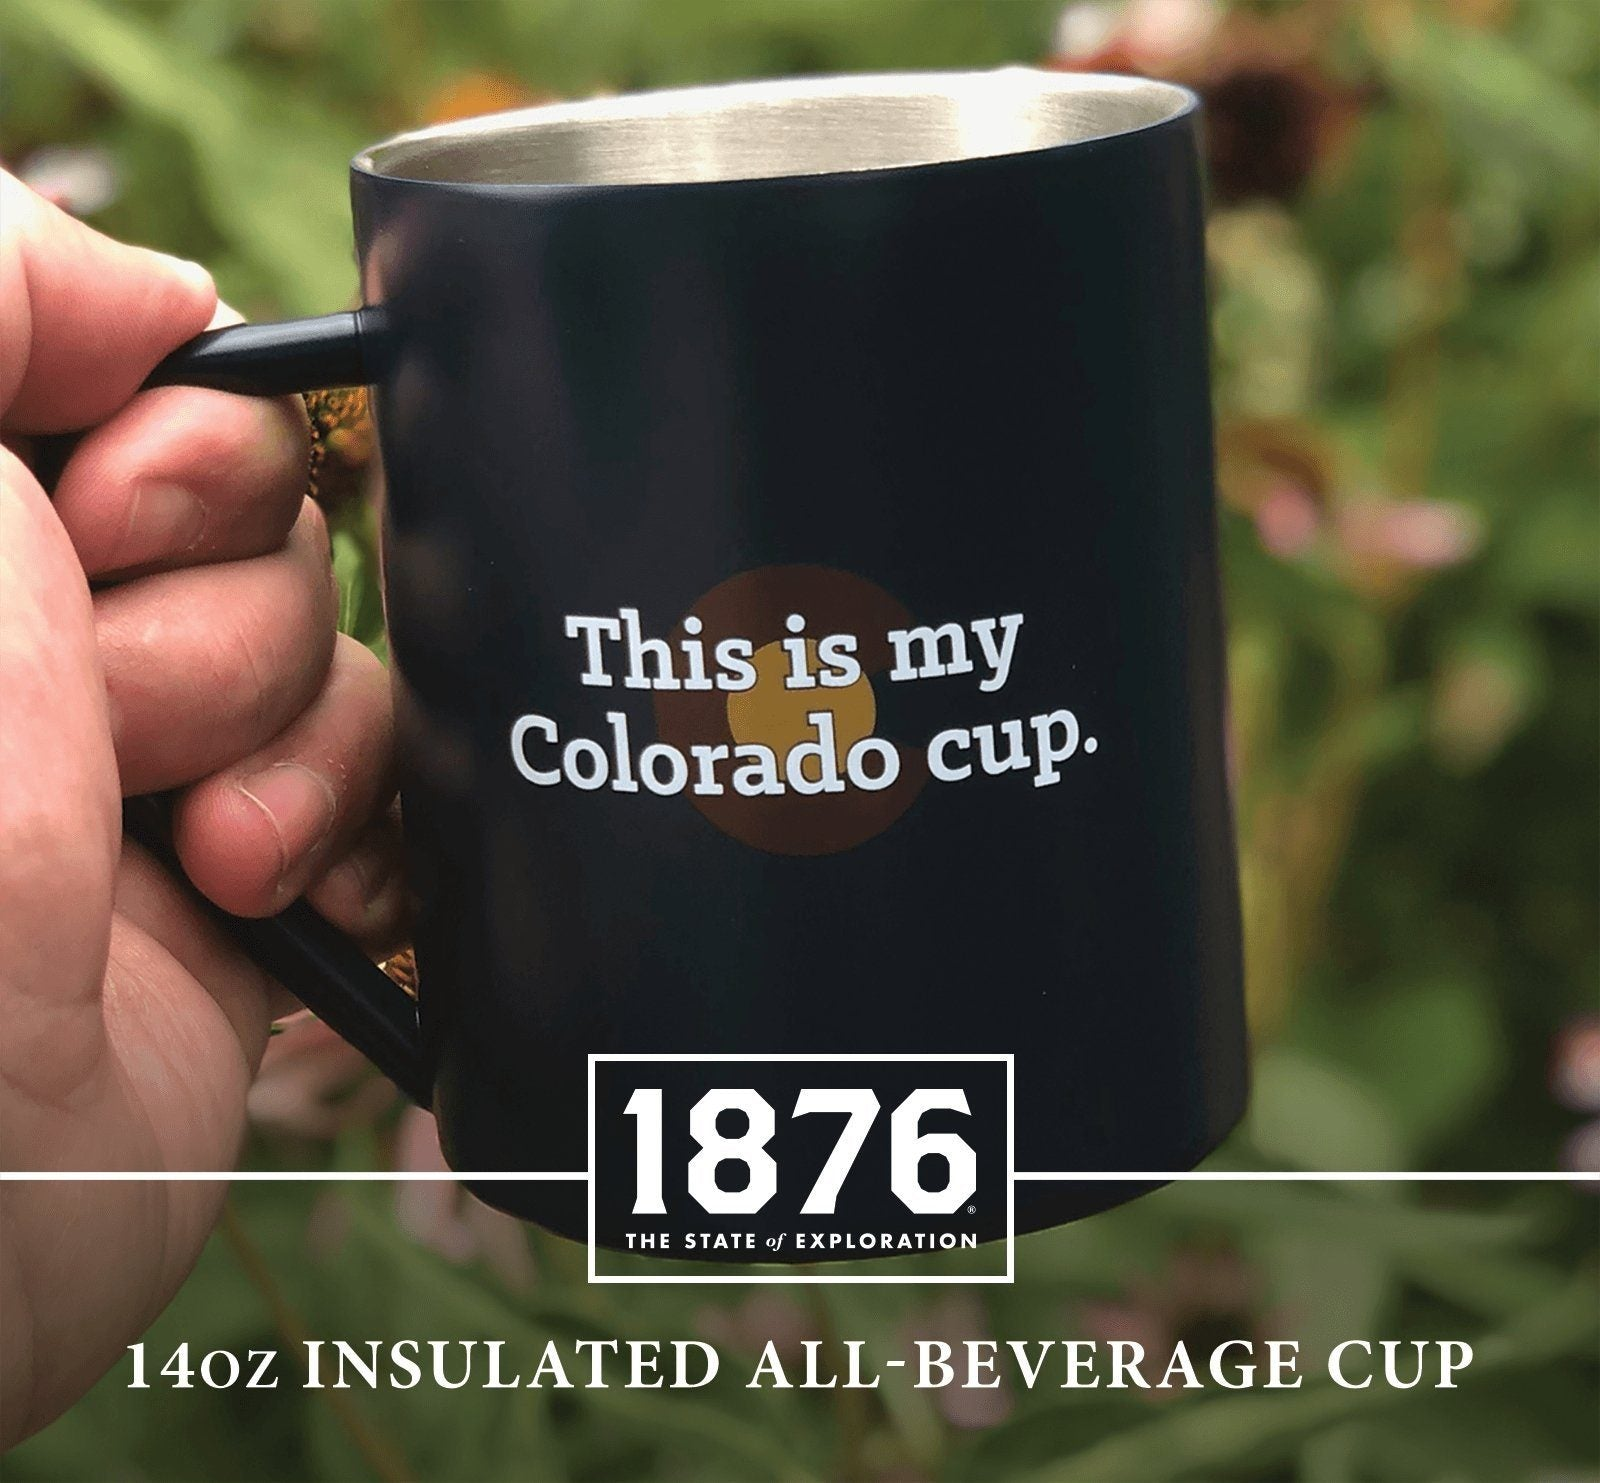 My Colorado Cup - 1876 | The State of Exploration